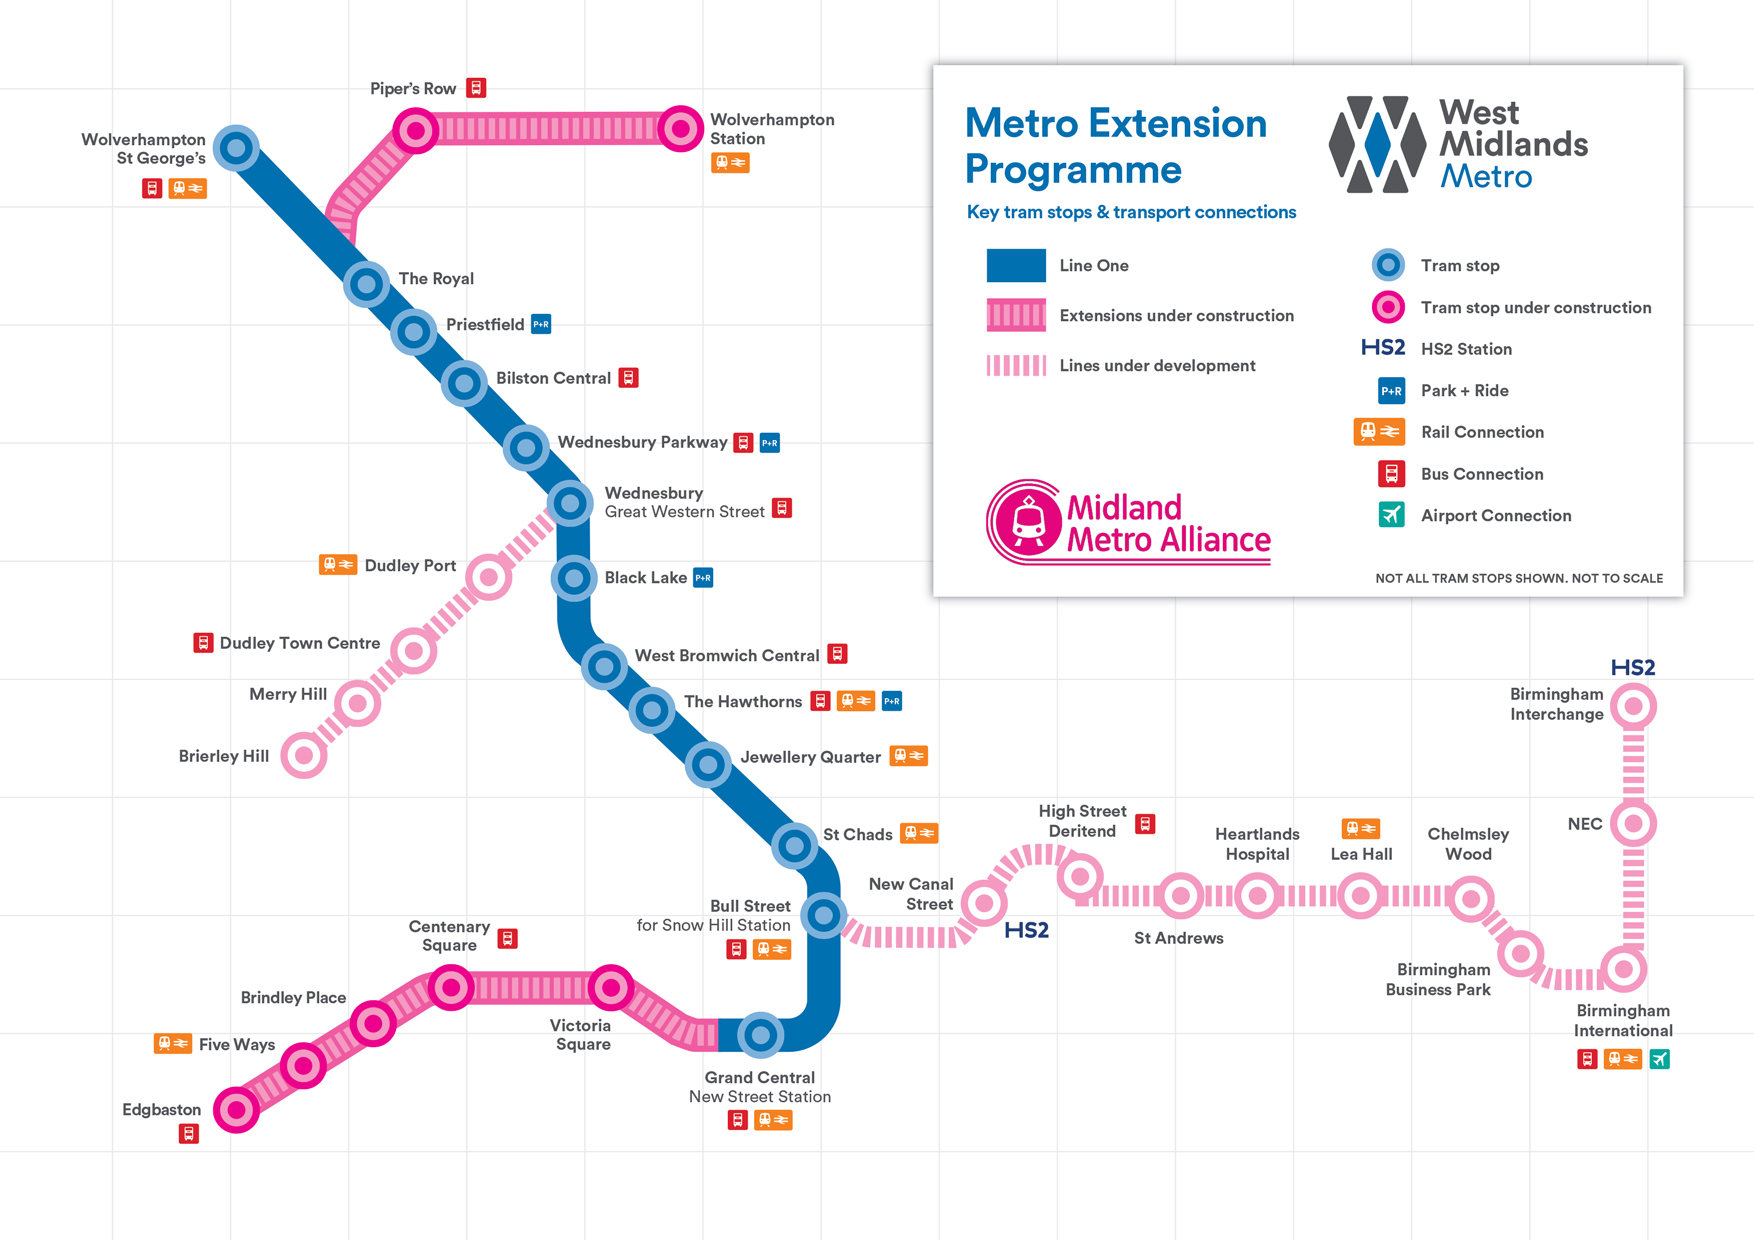 MetroExpansion